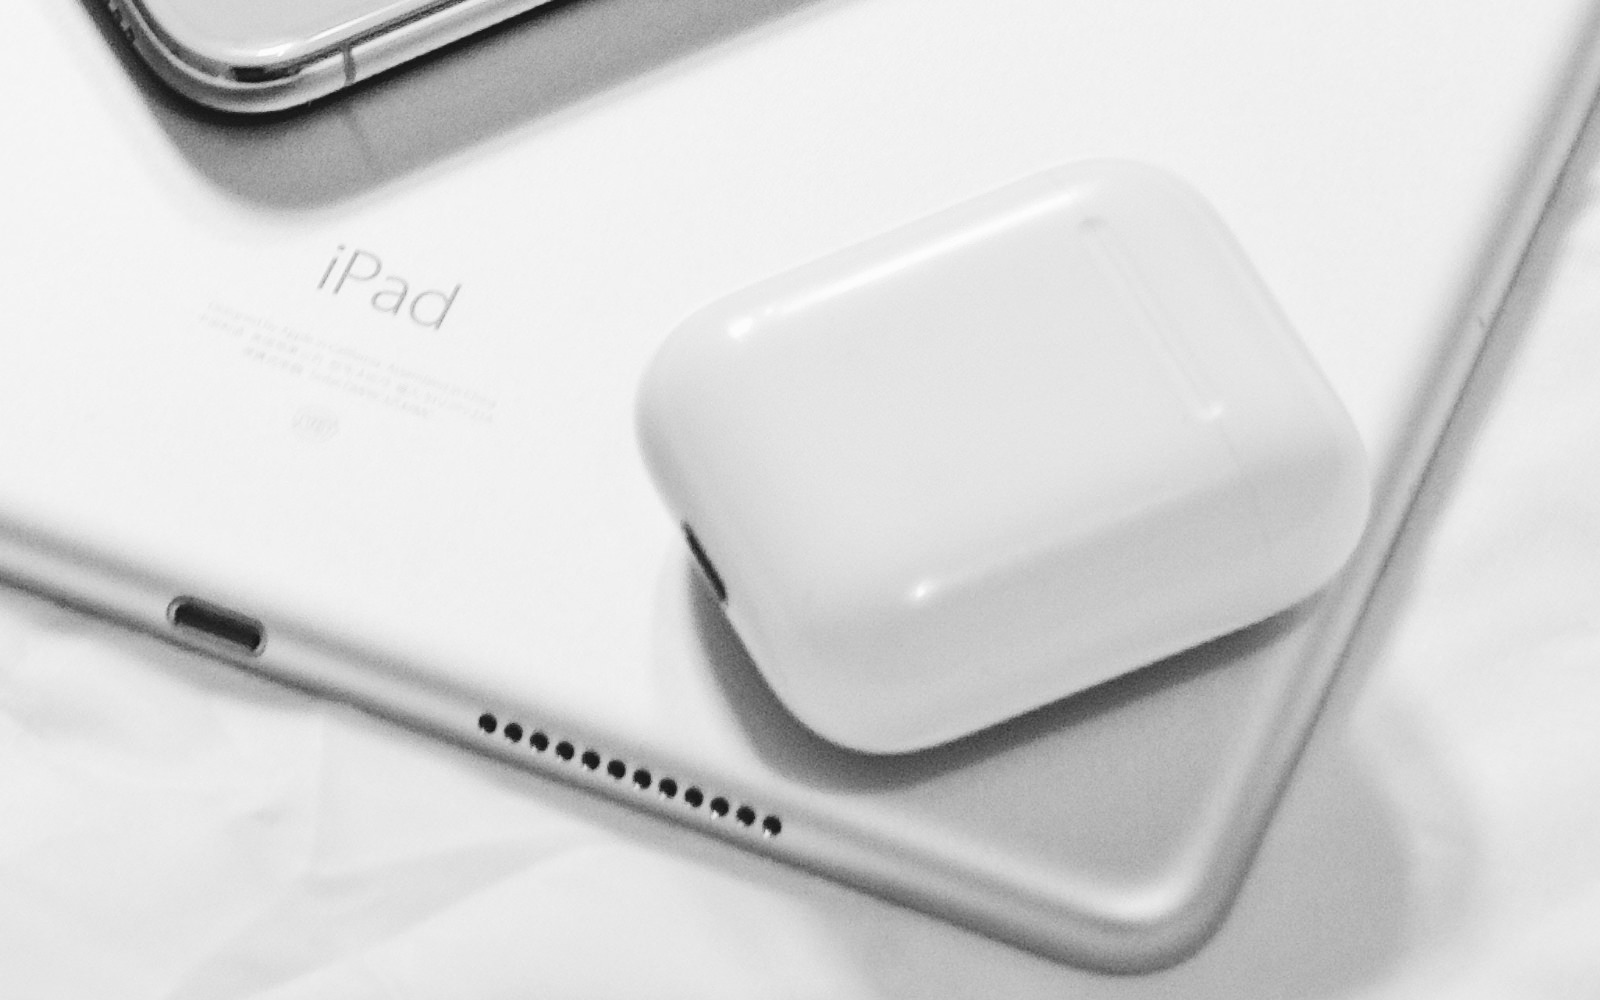 eleven-x-517447-unsplash-airpods-and-ipad-and-iphone.jpg